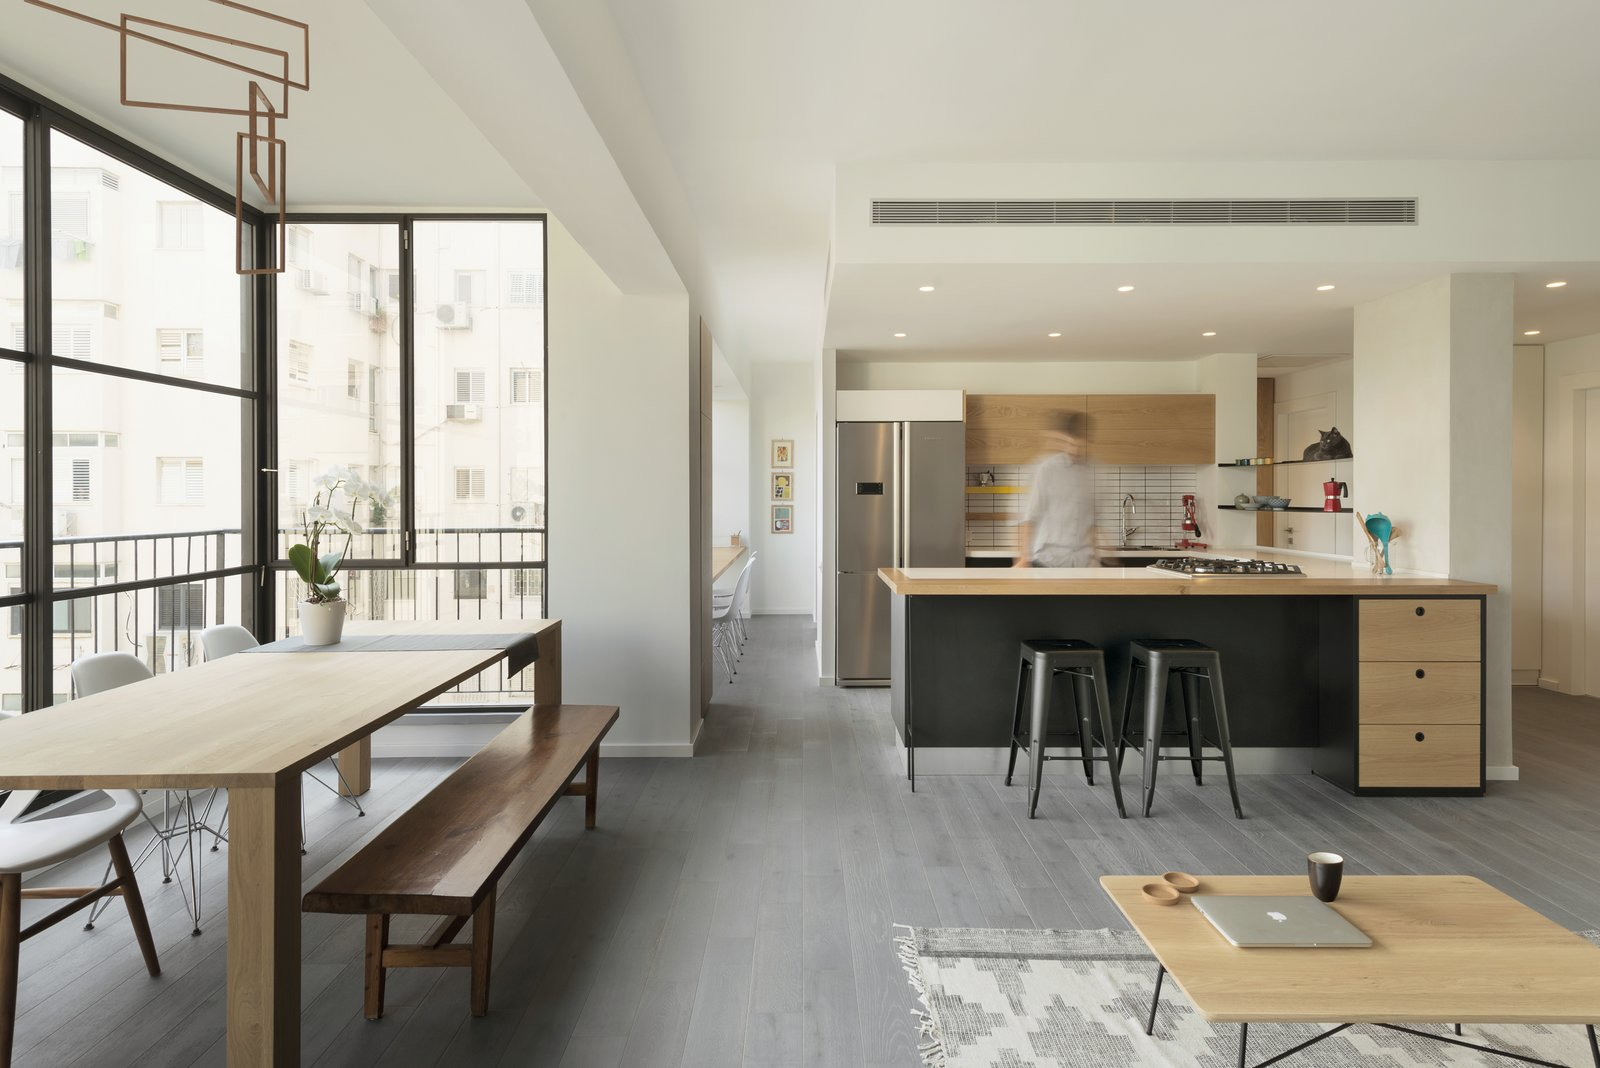 Dining Room, Recessed Lighting, Light Hardwood Floor, Bar, Chair, Rug Floor, Stools, Table, and Bench  Photo 5 of 14 in Graphic Design Guides an Apartment Renovation in Tel Aviv